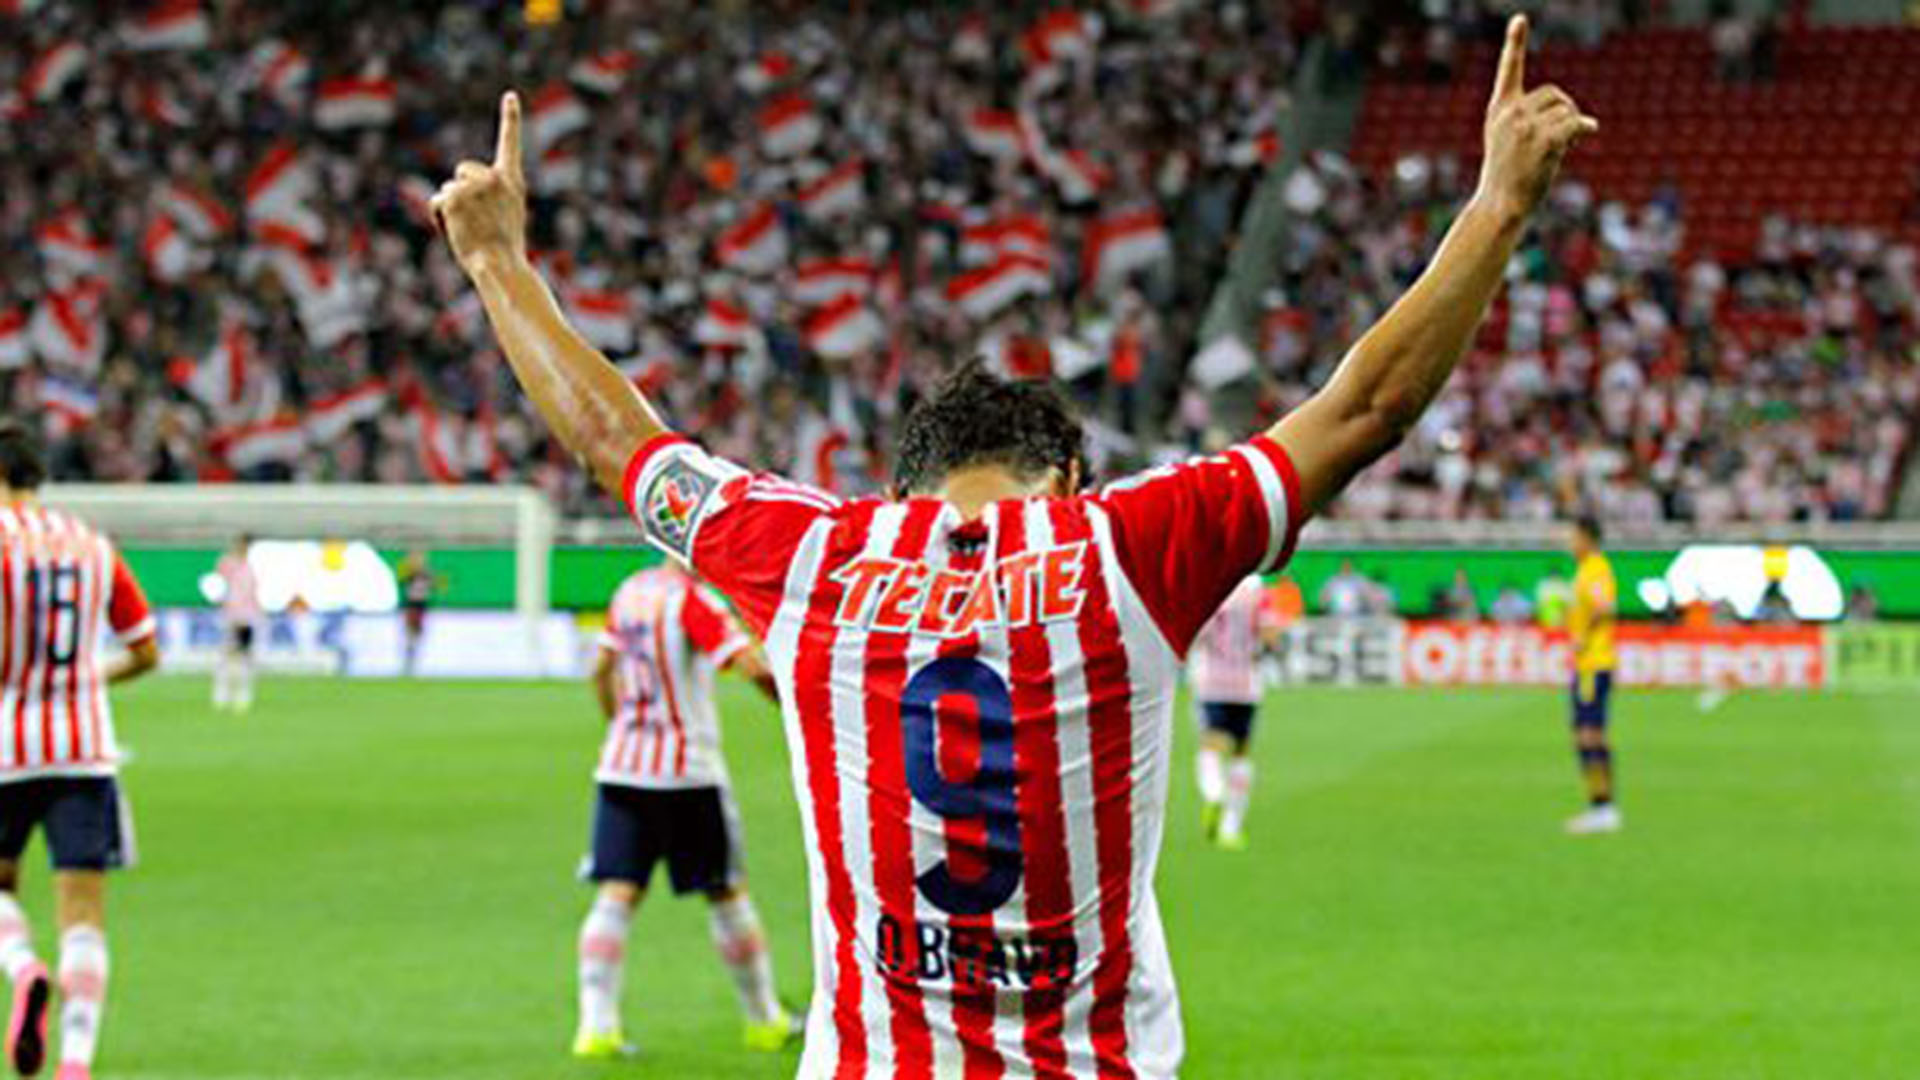 Chivas soccer team wallpaper compartir chivas pinterest chivas soccer team wallpaper chivas soccer team wallpaper voltagebd Images